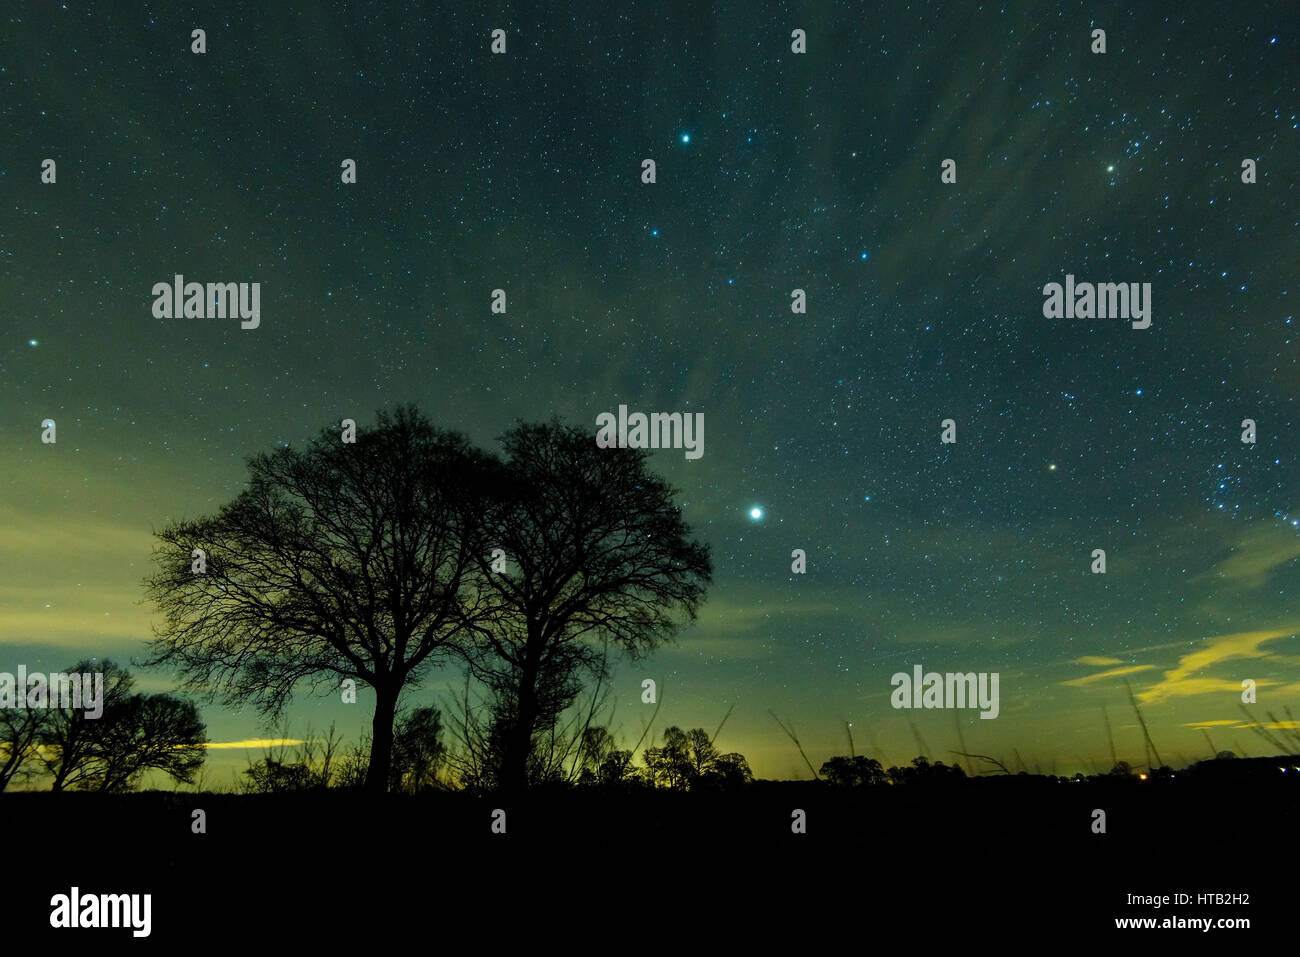 Natural photograph, star sky , Naturfotografie, Sternenhimmel Stock Photo